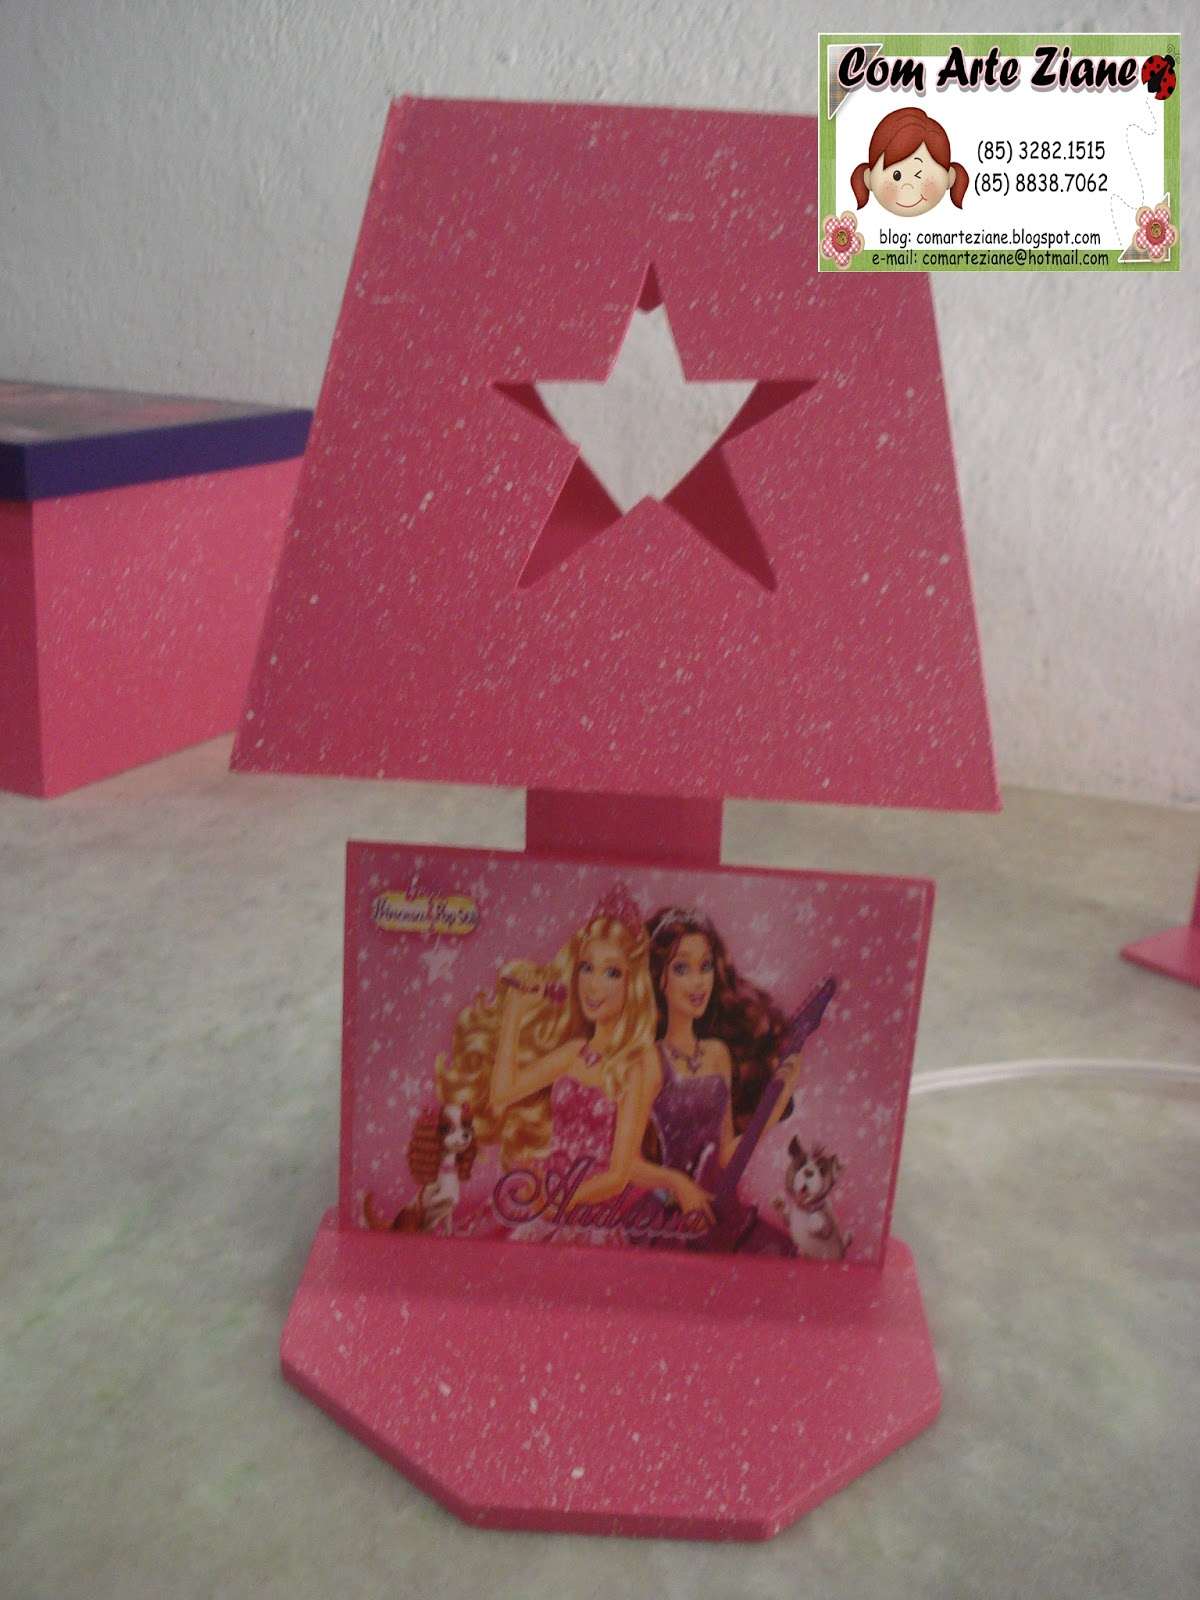 Com Arte Ziane: KIT DE QUARTO BARBIE POP STAR #8C3746 1200 1600